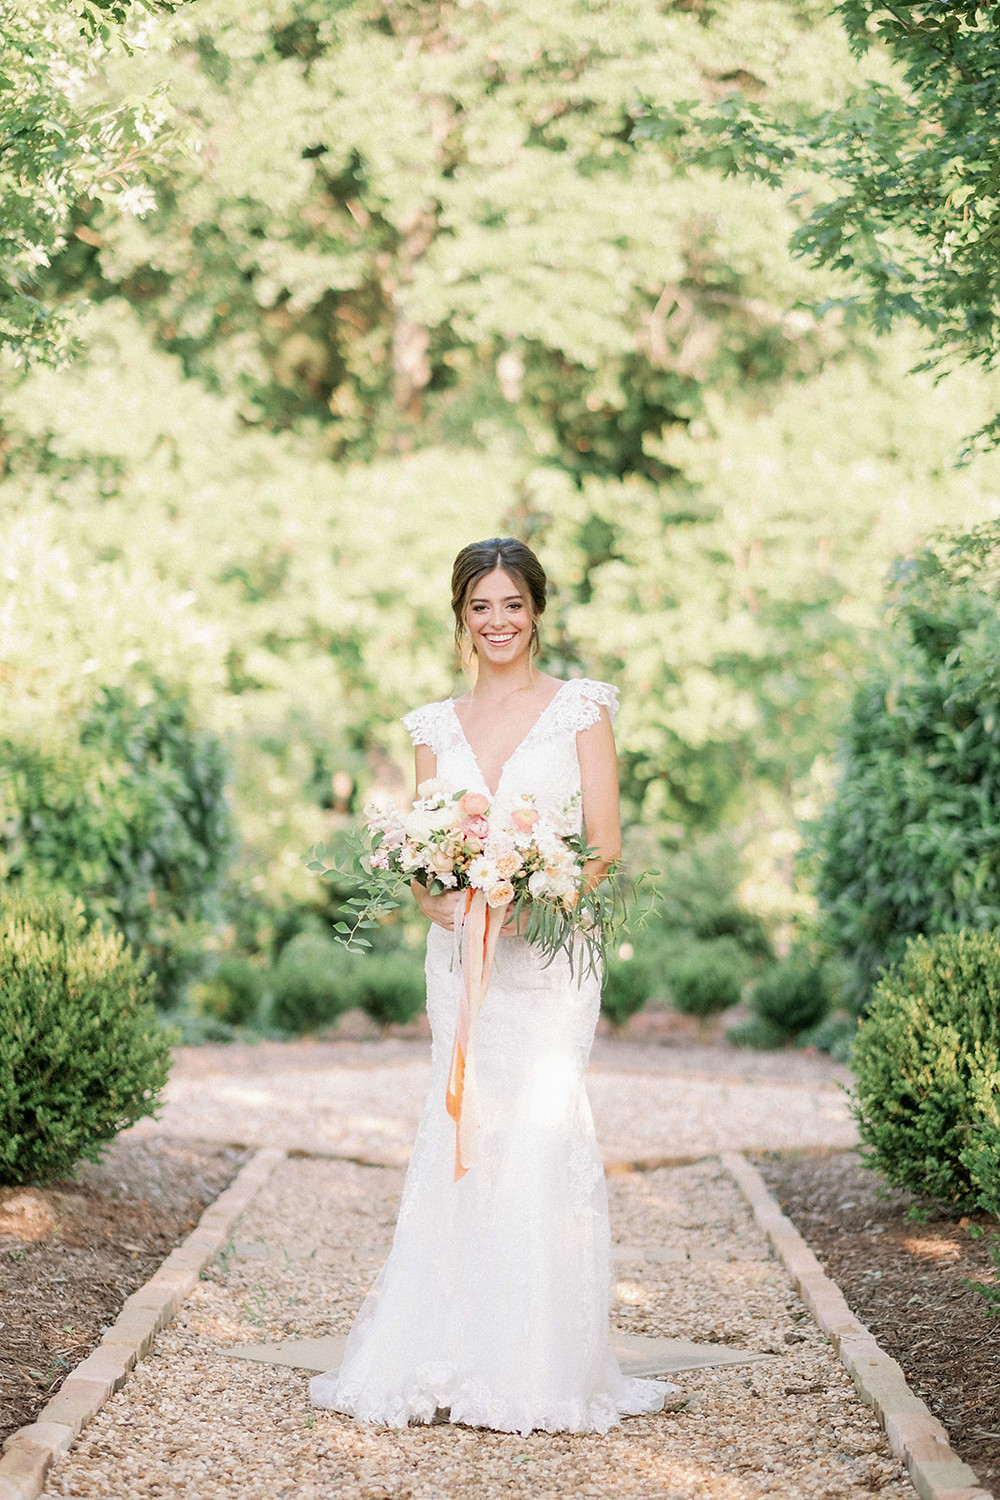 beautiful bride holding a bouquet of flowers in a garden by becca jones photography